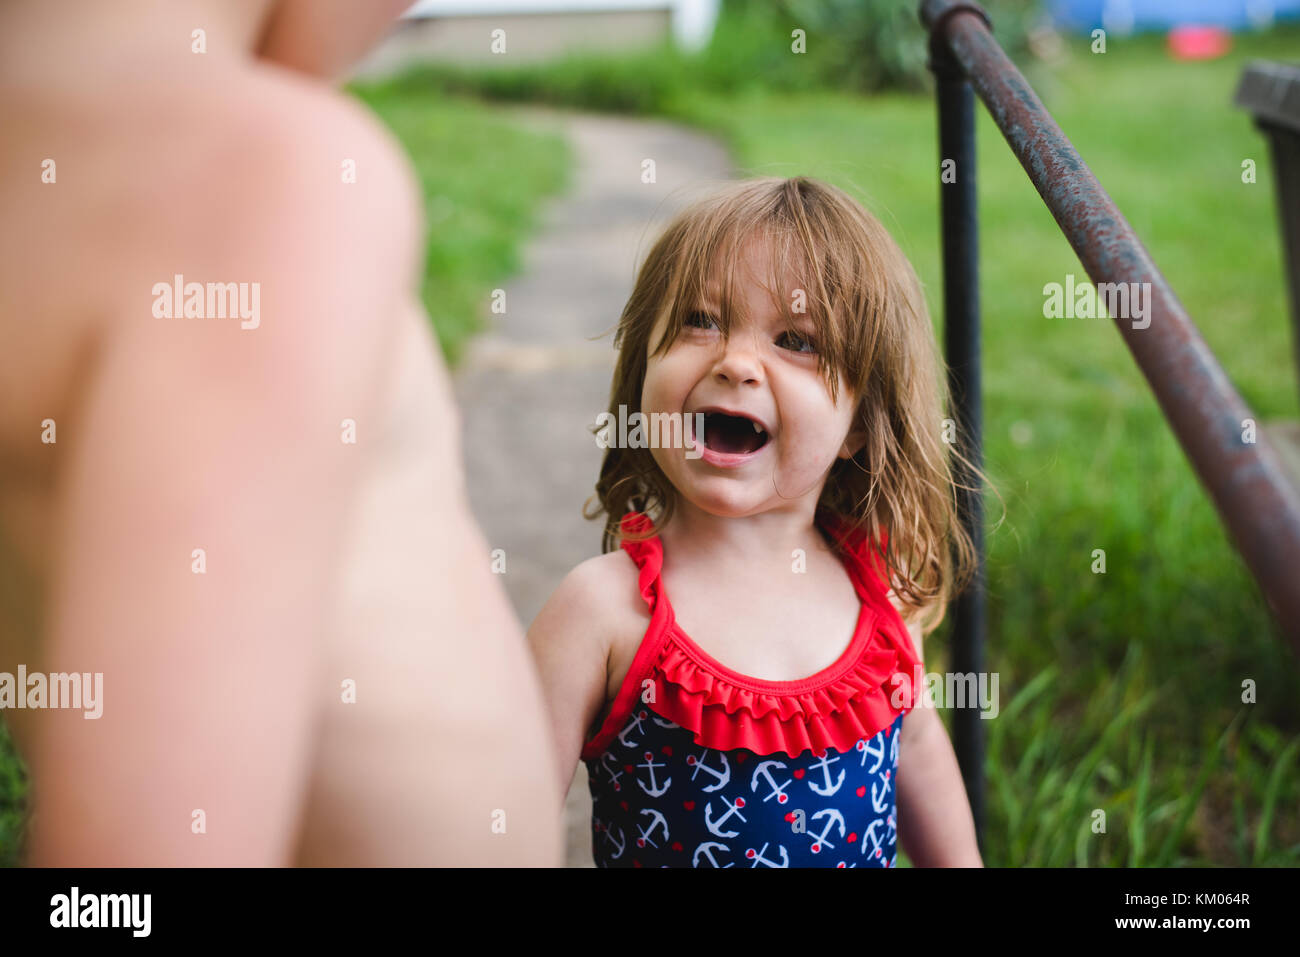 A toddler cries while her brother looks on. - Stock Image